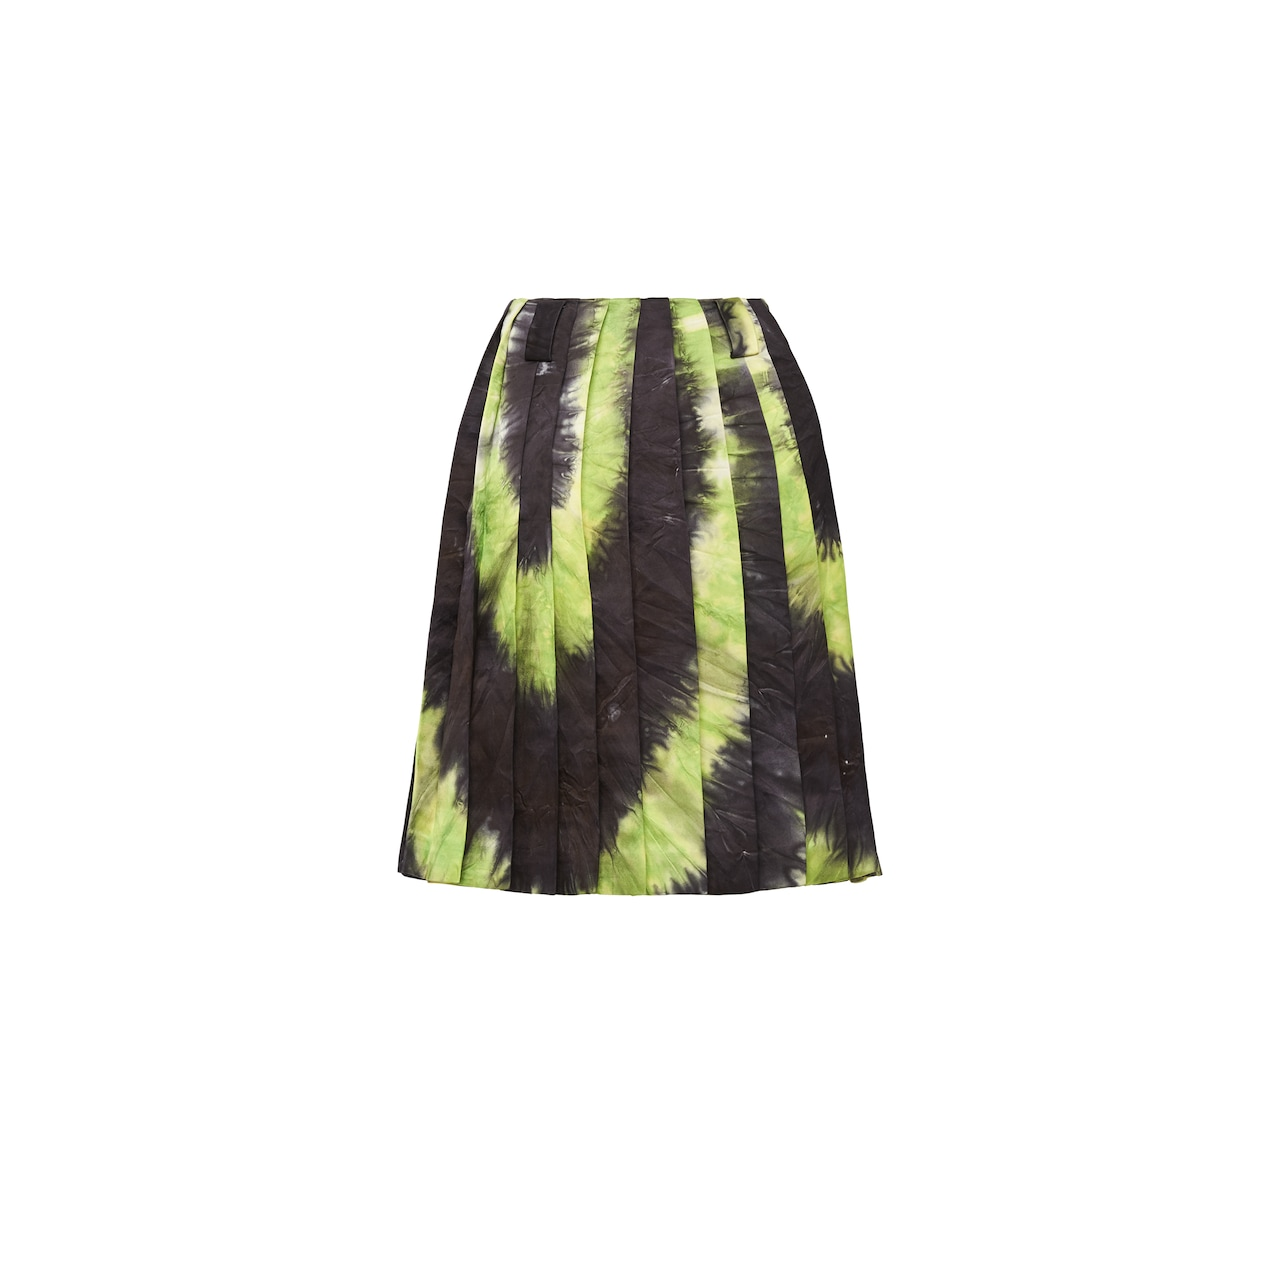 Faille skirt with tie-dye motif